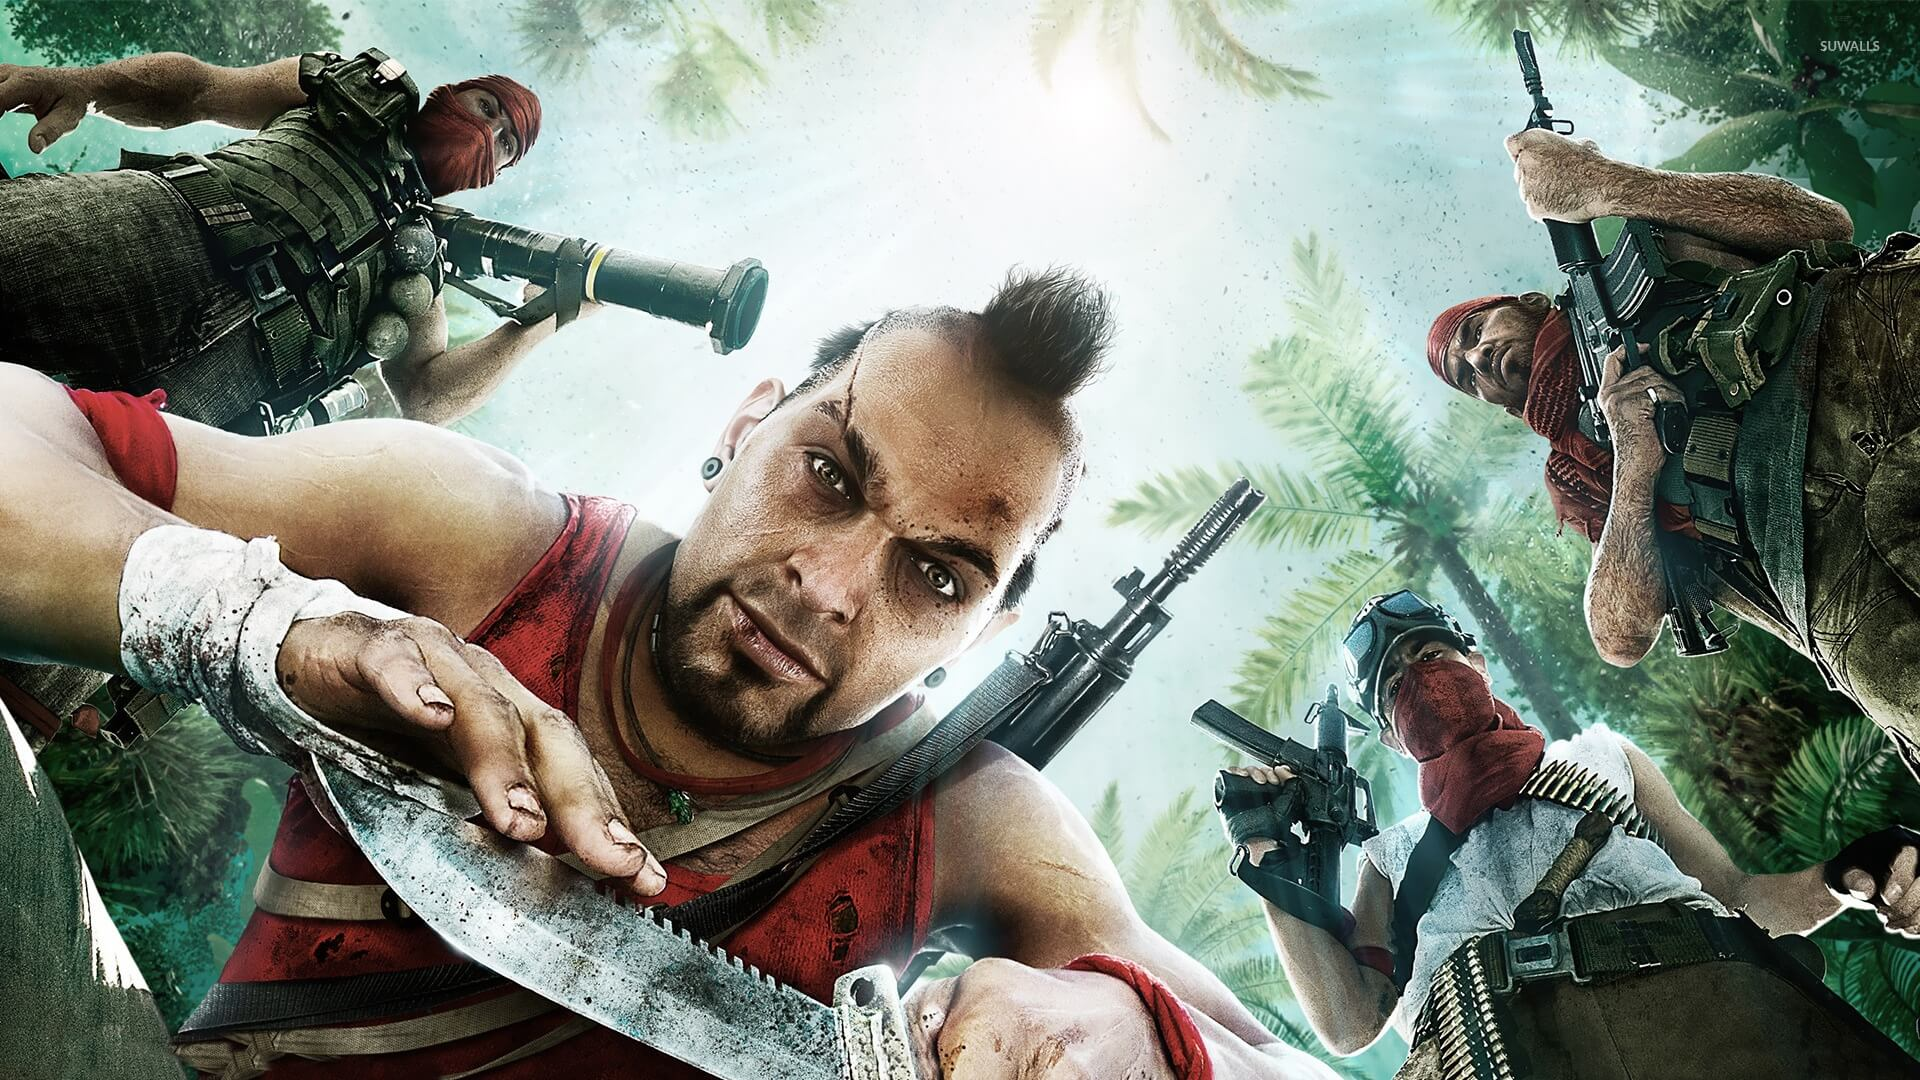 Far cry 3 imagefap sex movies